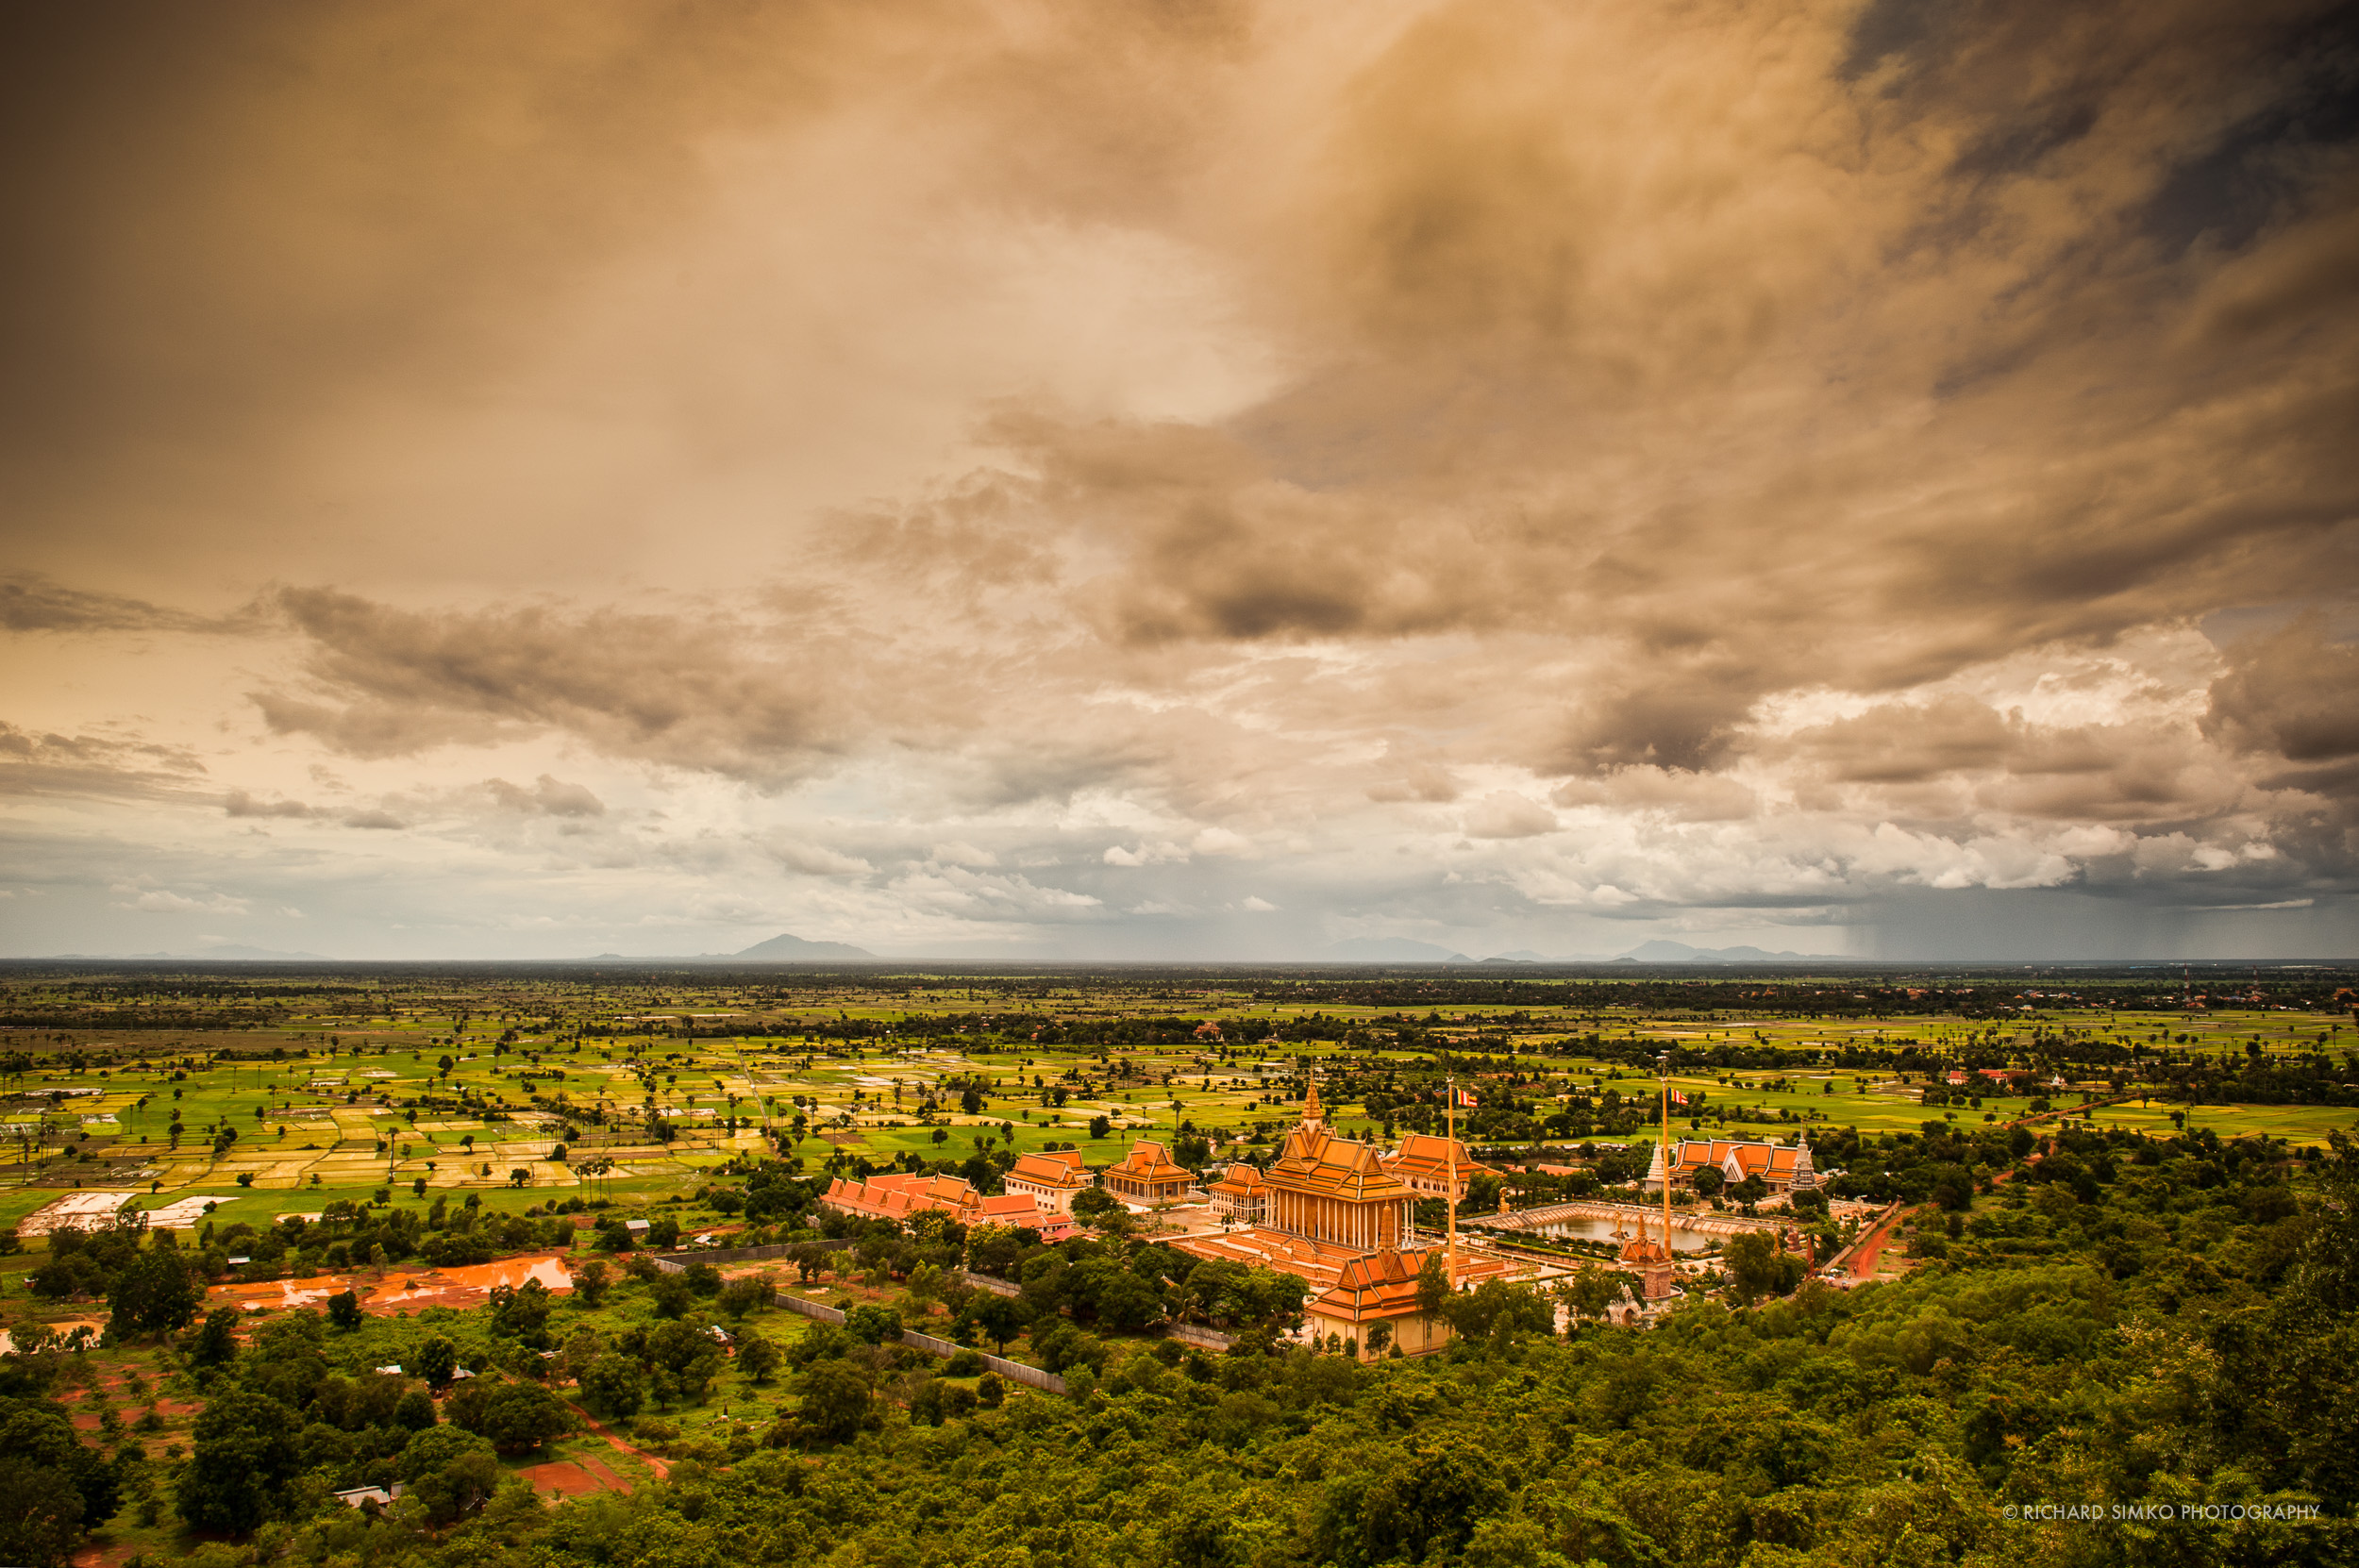 Udong. The ancient Capital of Cambodia.